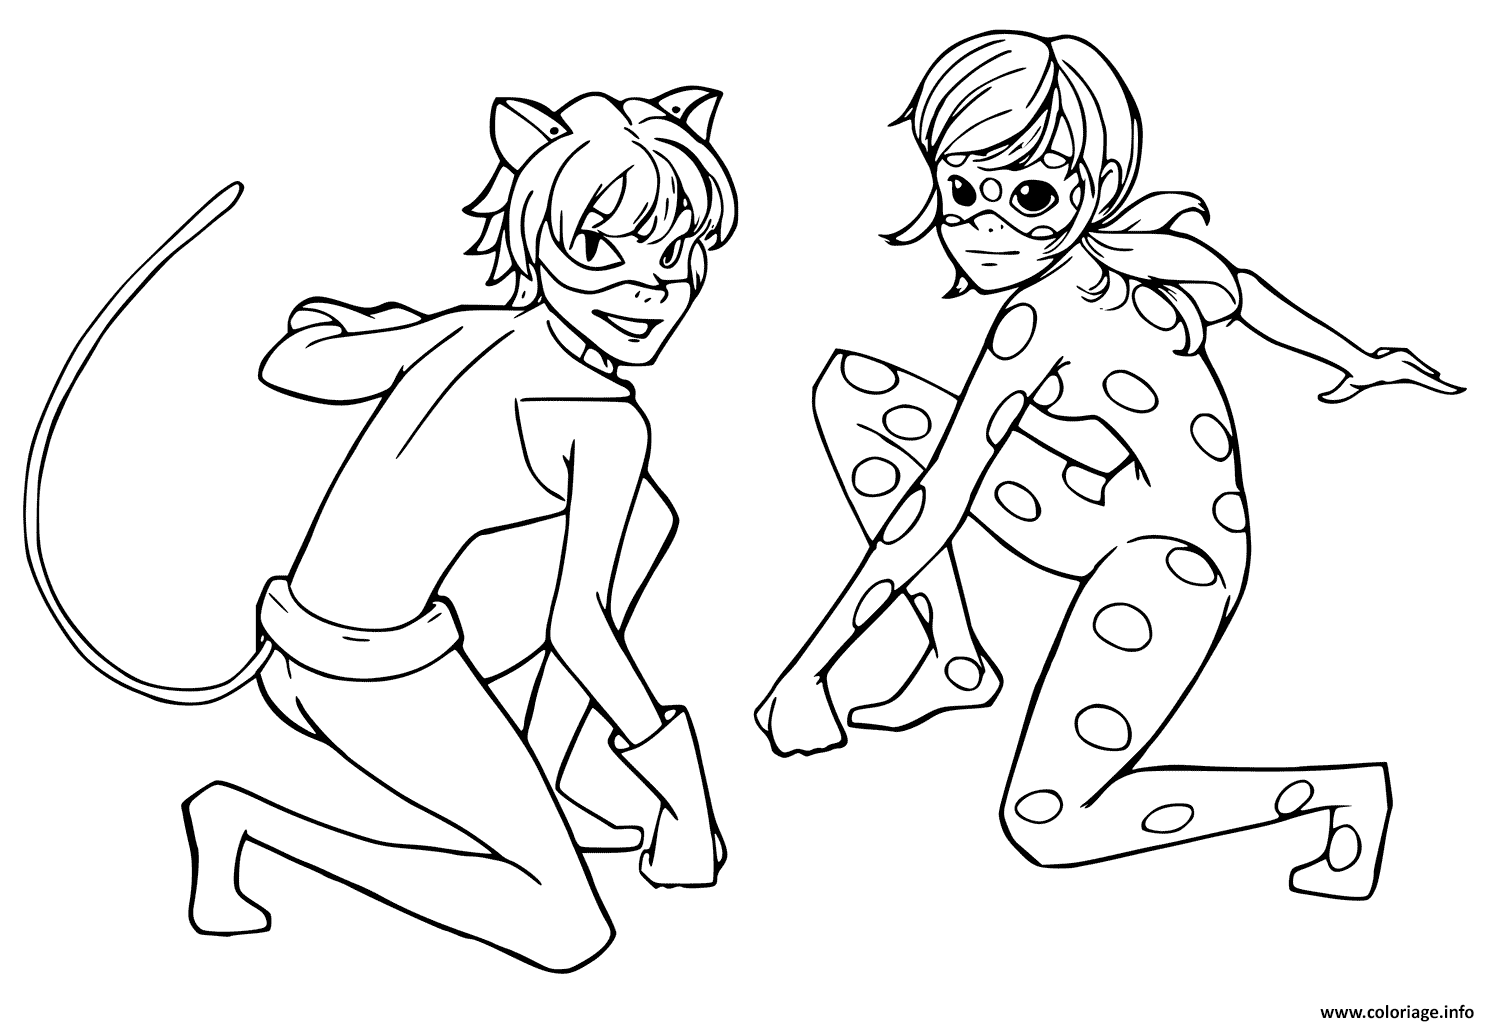 Coloriage Miraculous Tales Of Ladybug Chat Noir Enfants A Imprimer